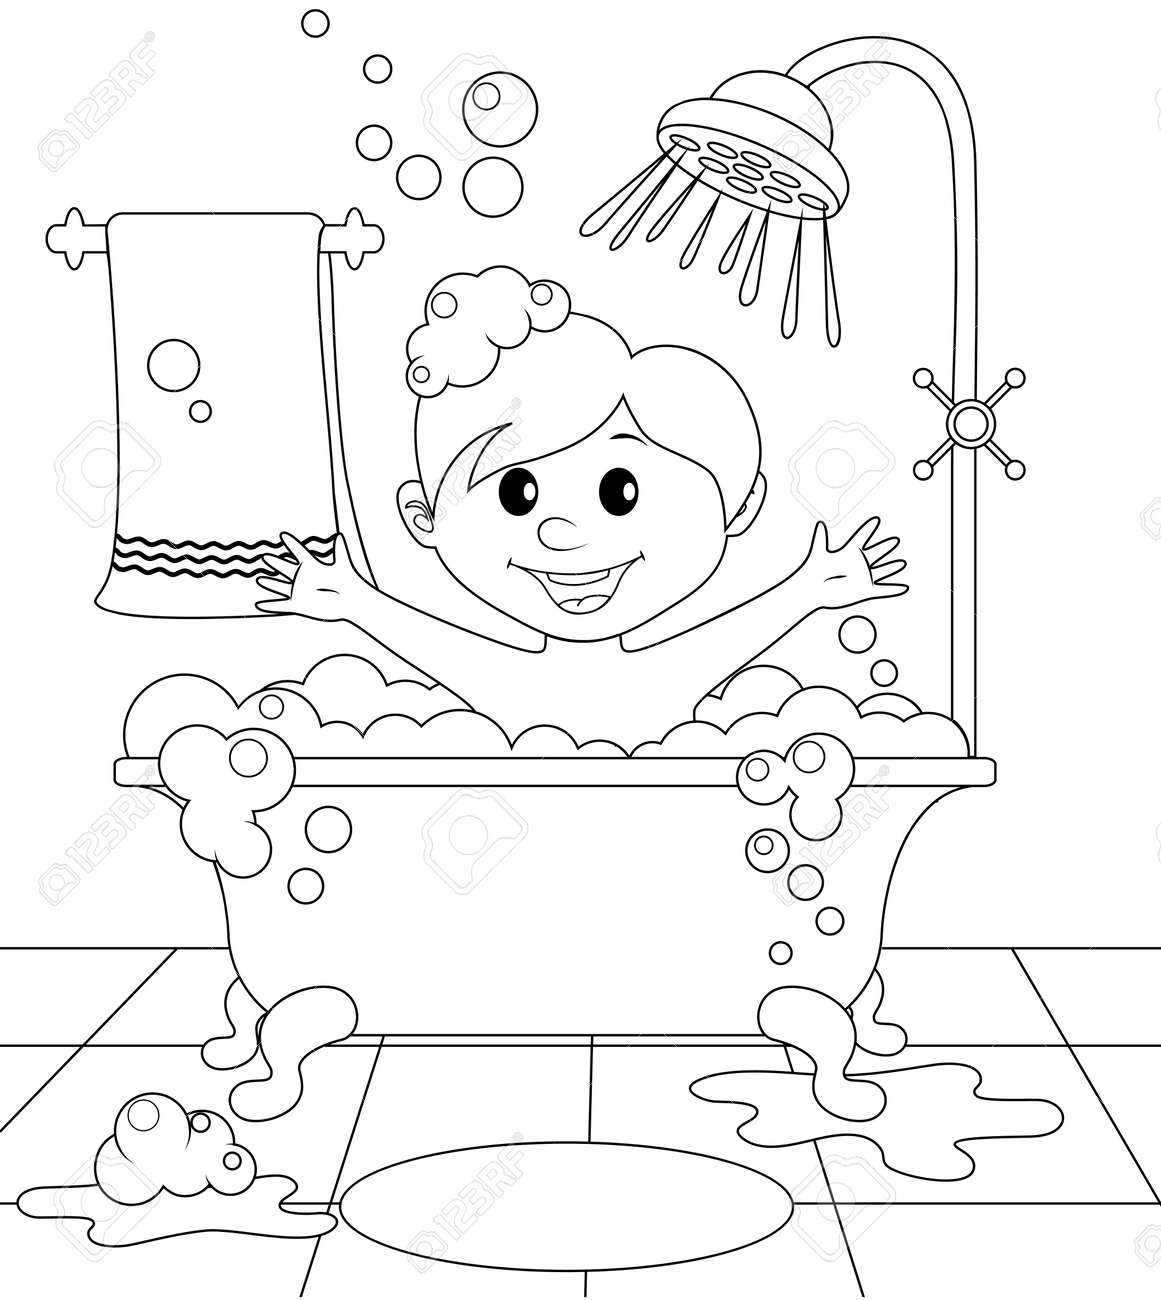 Boy In The Bathroom Black And White Illustration For Coloring Book Stock Vector